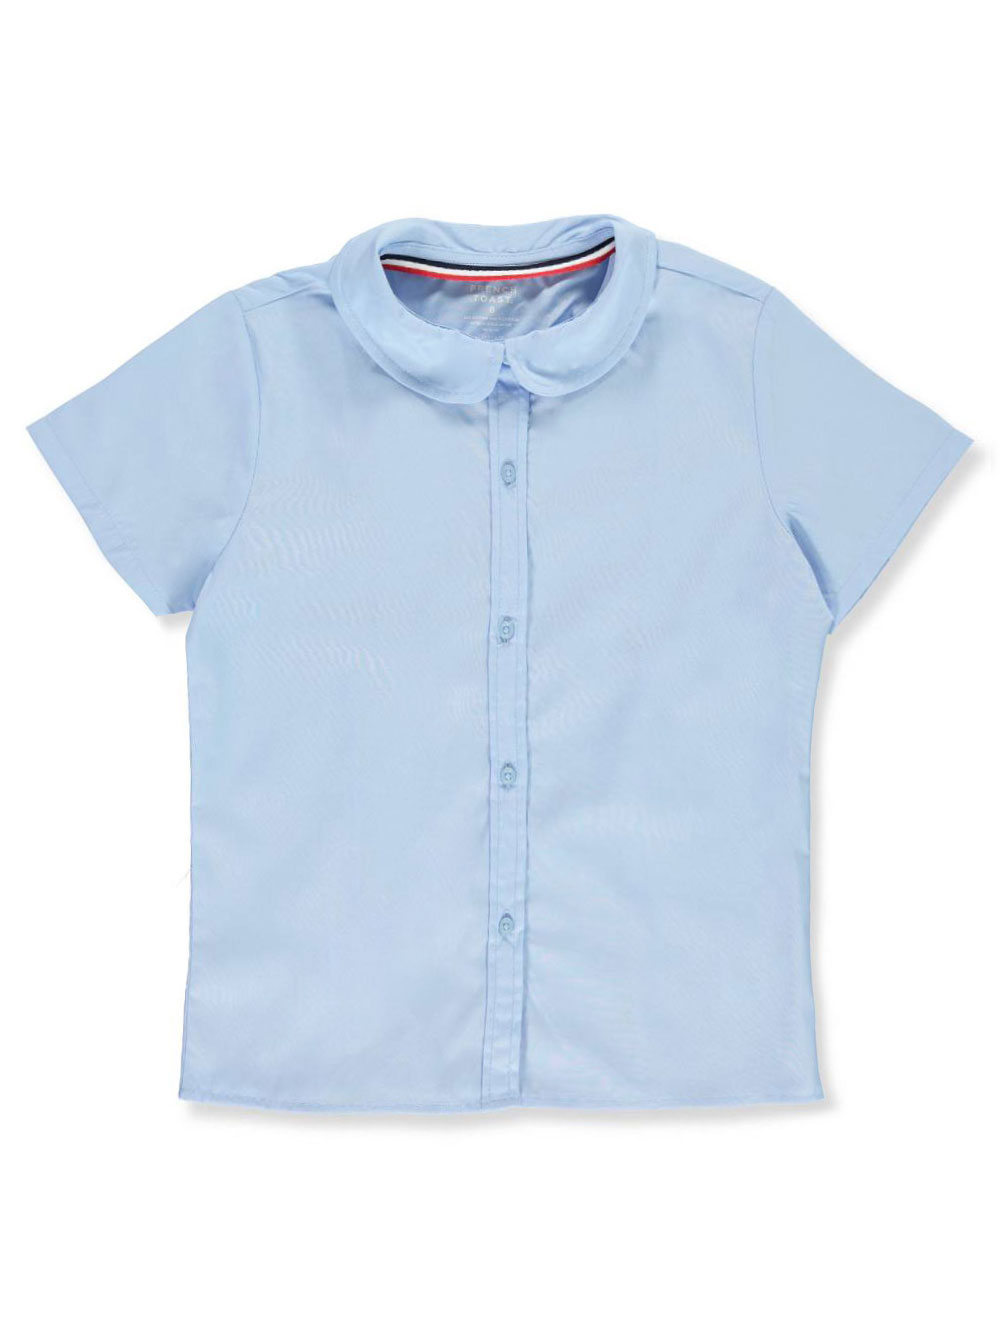 Blouses Peter Pan Fitted Shirt